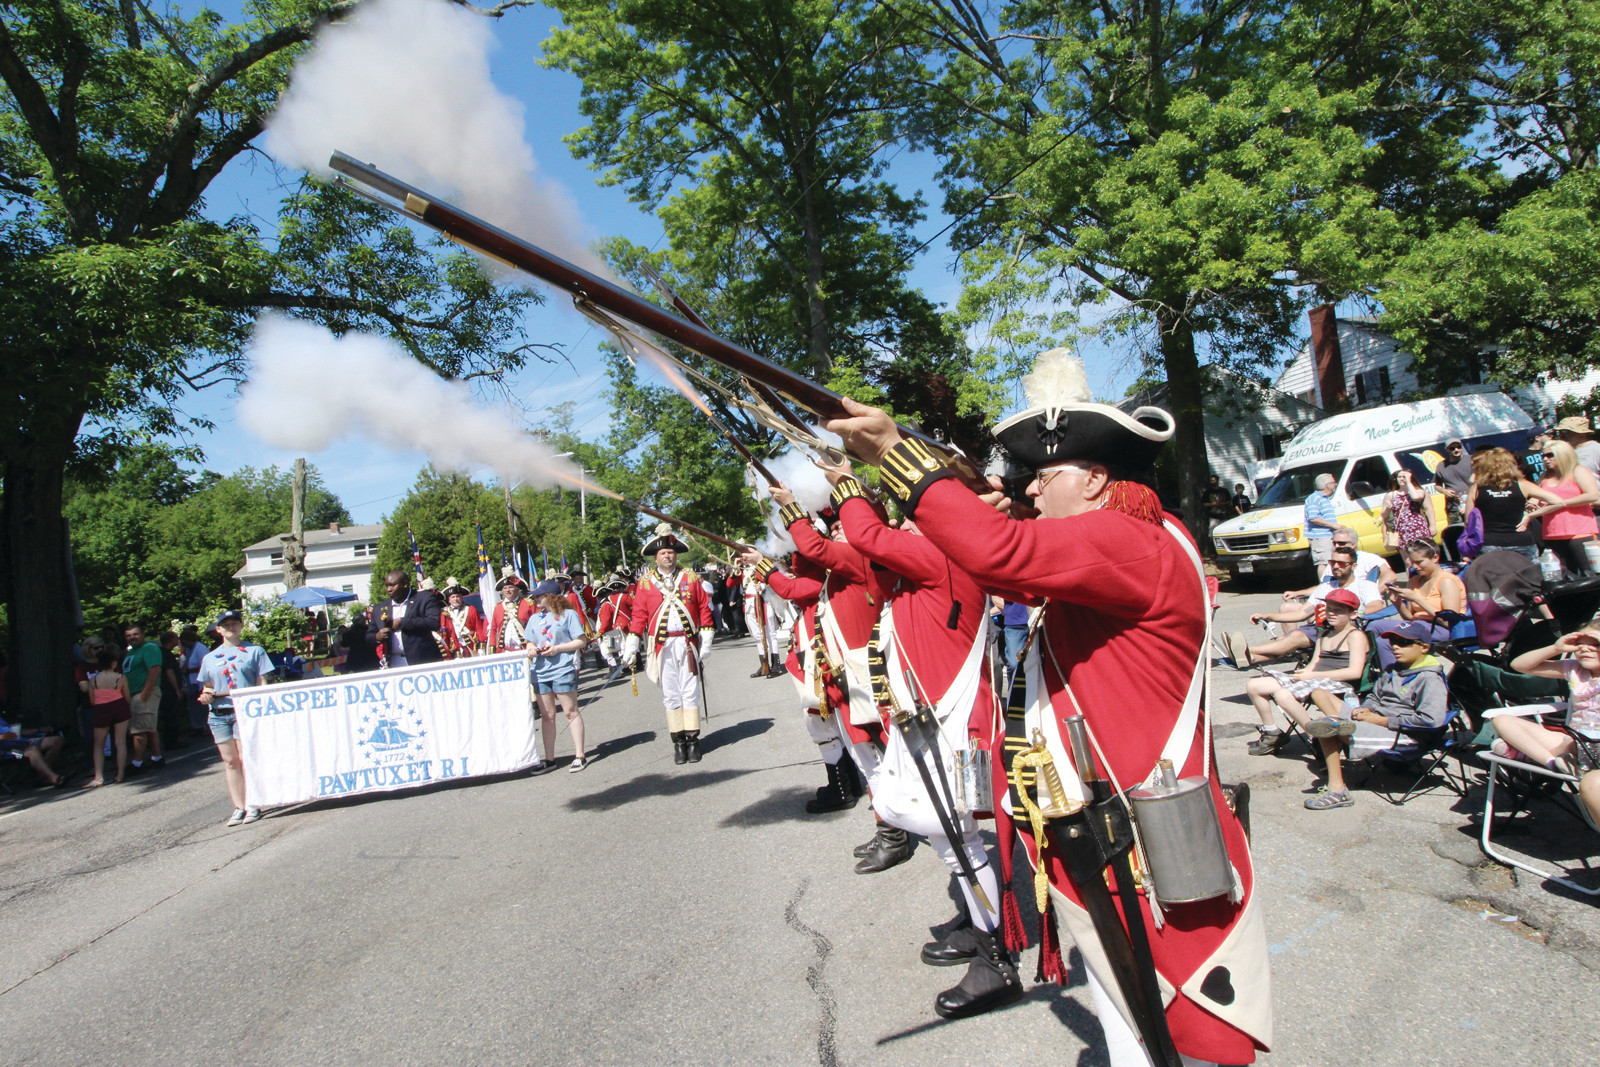 HISTORY AND COMMUNITY: Members of the Pawtuxet Rangers fire off a volley during the 2017 Gaspee Days Parade as participants and people along the parade route look on. This year's Gaspee Days festivities kick off Saturday with the Proclamation Ceremony and Walking Tour of Historic Pawtuxet Village.